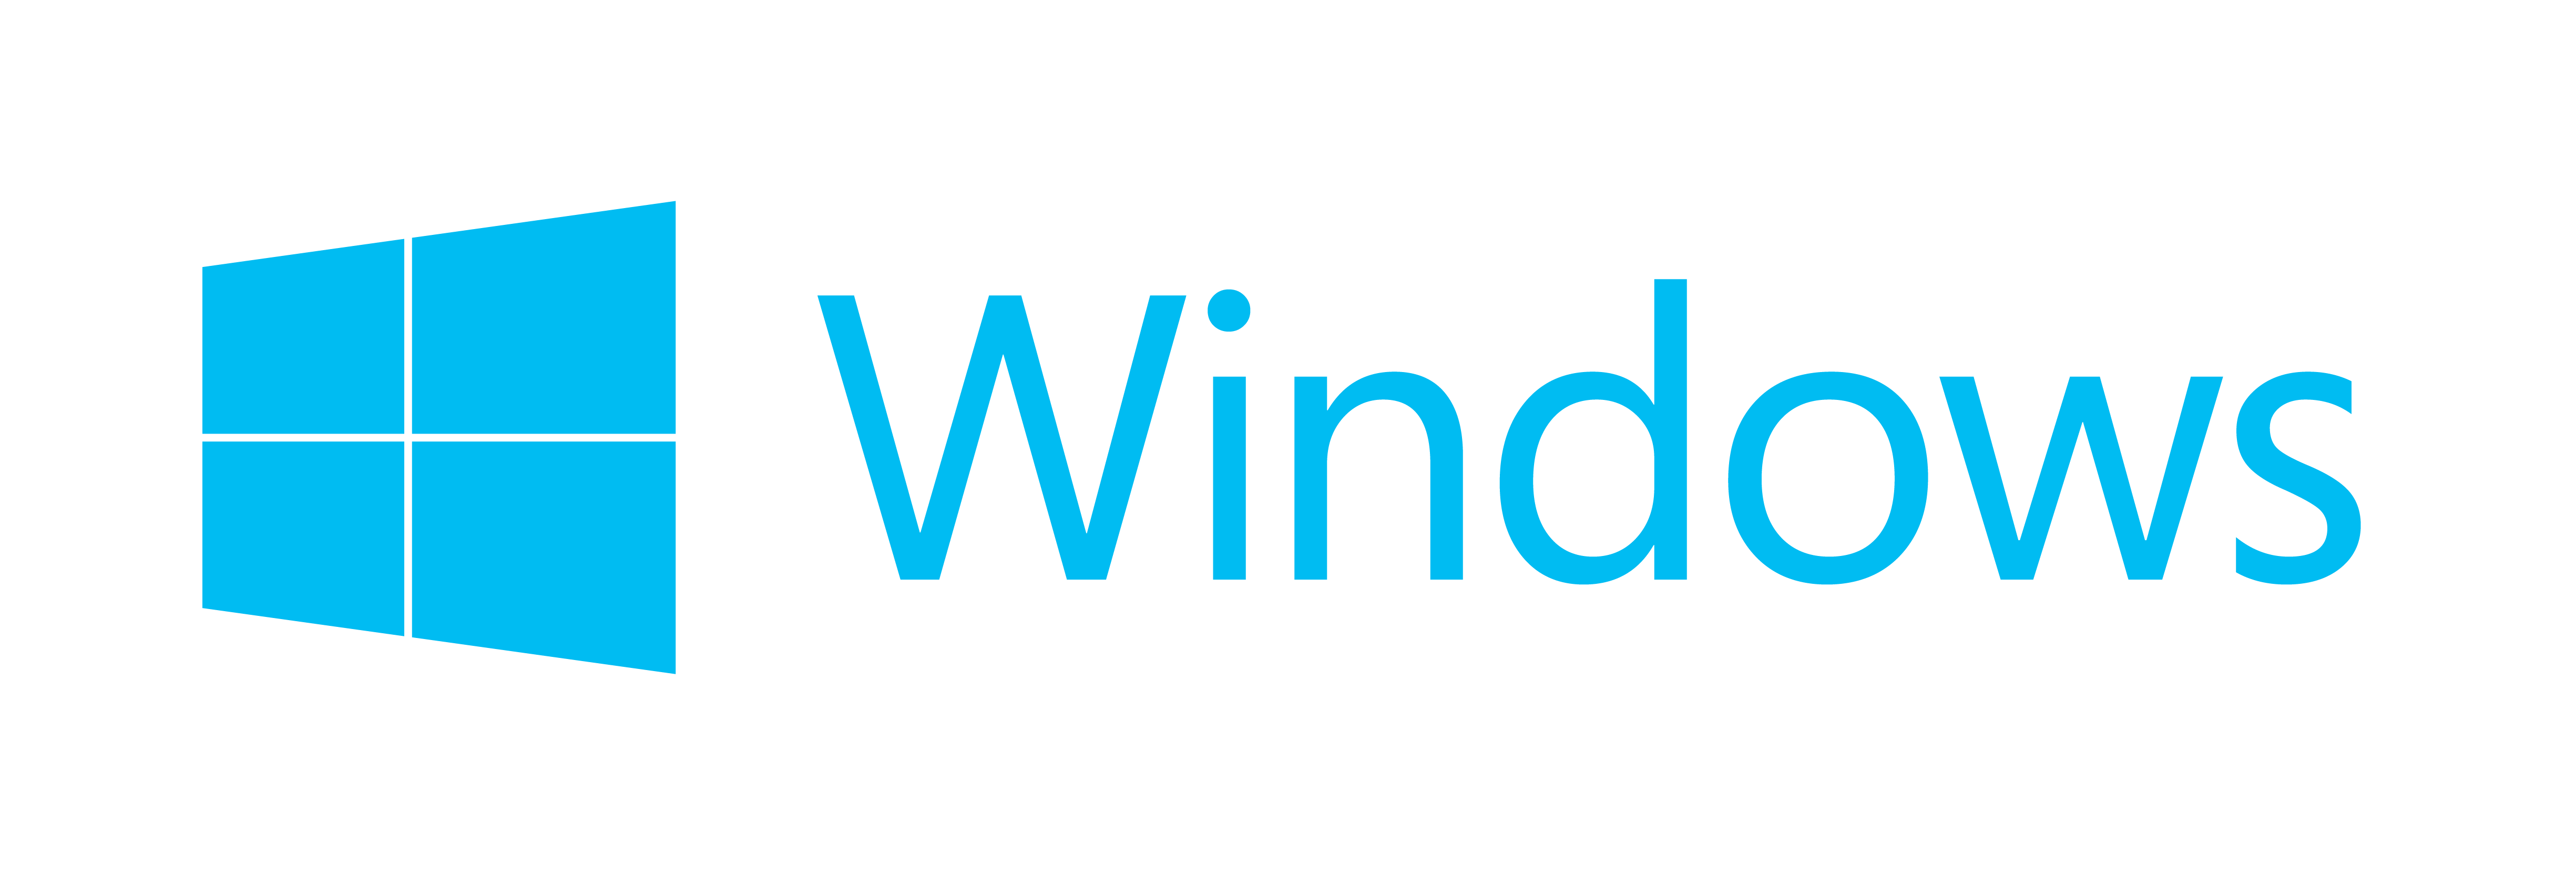 Windows Png image #42344